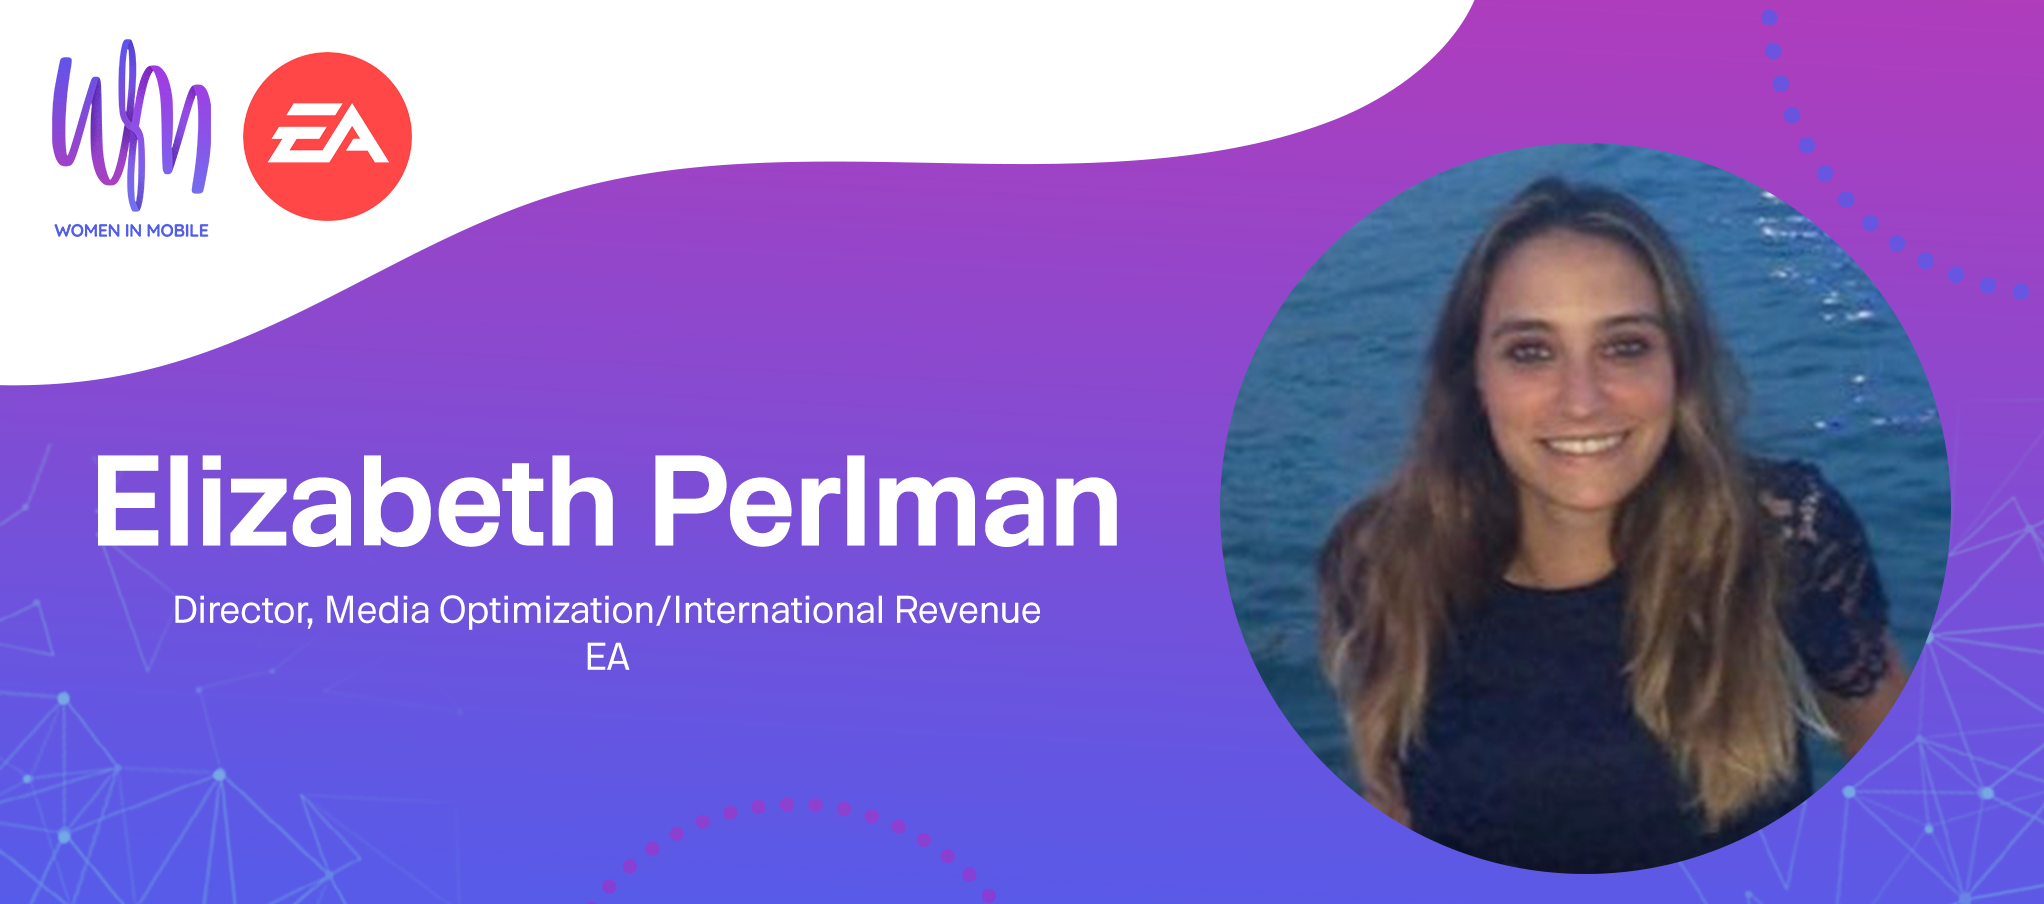 Elizabeth Perlman Director, Media Optimization/International Revenue, EA at Aarki's Women in Mobile Series